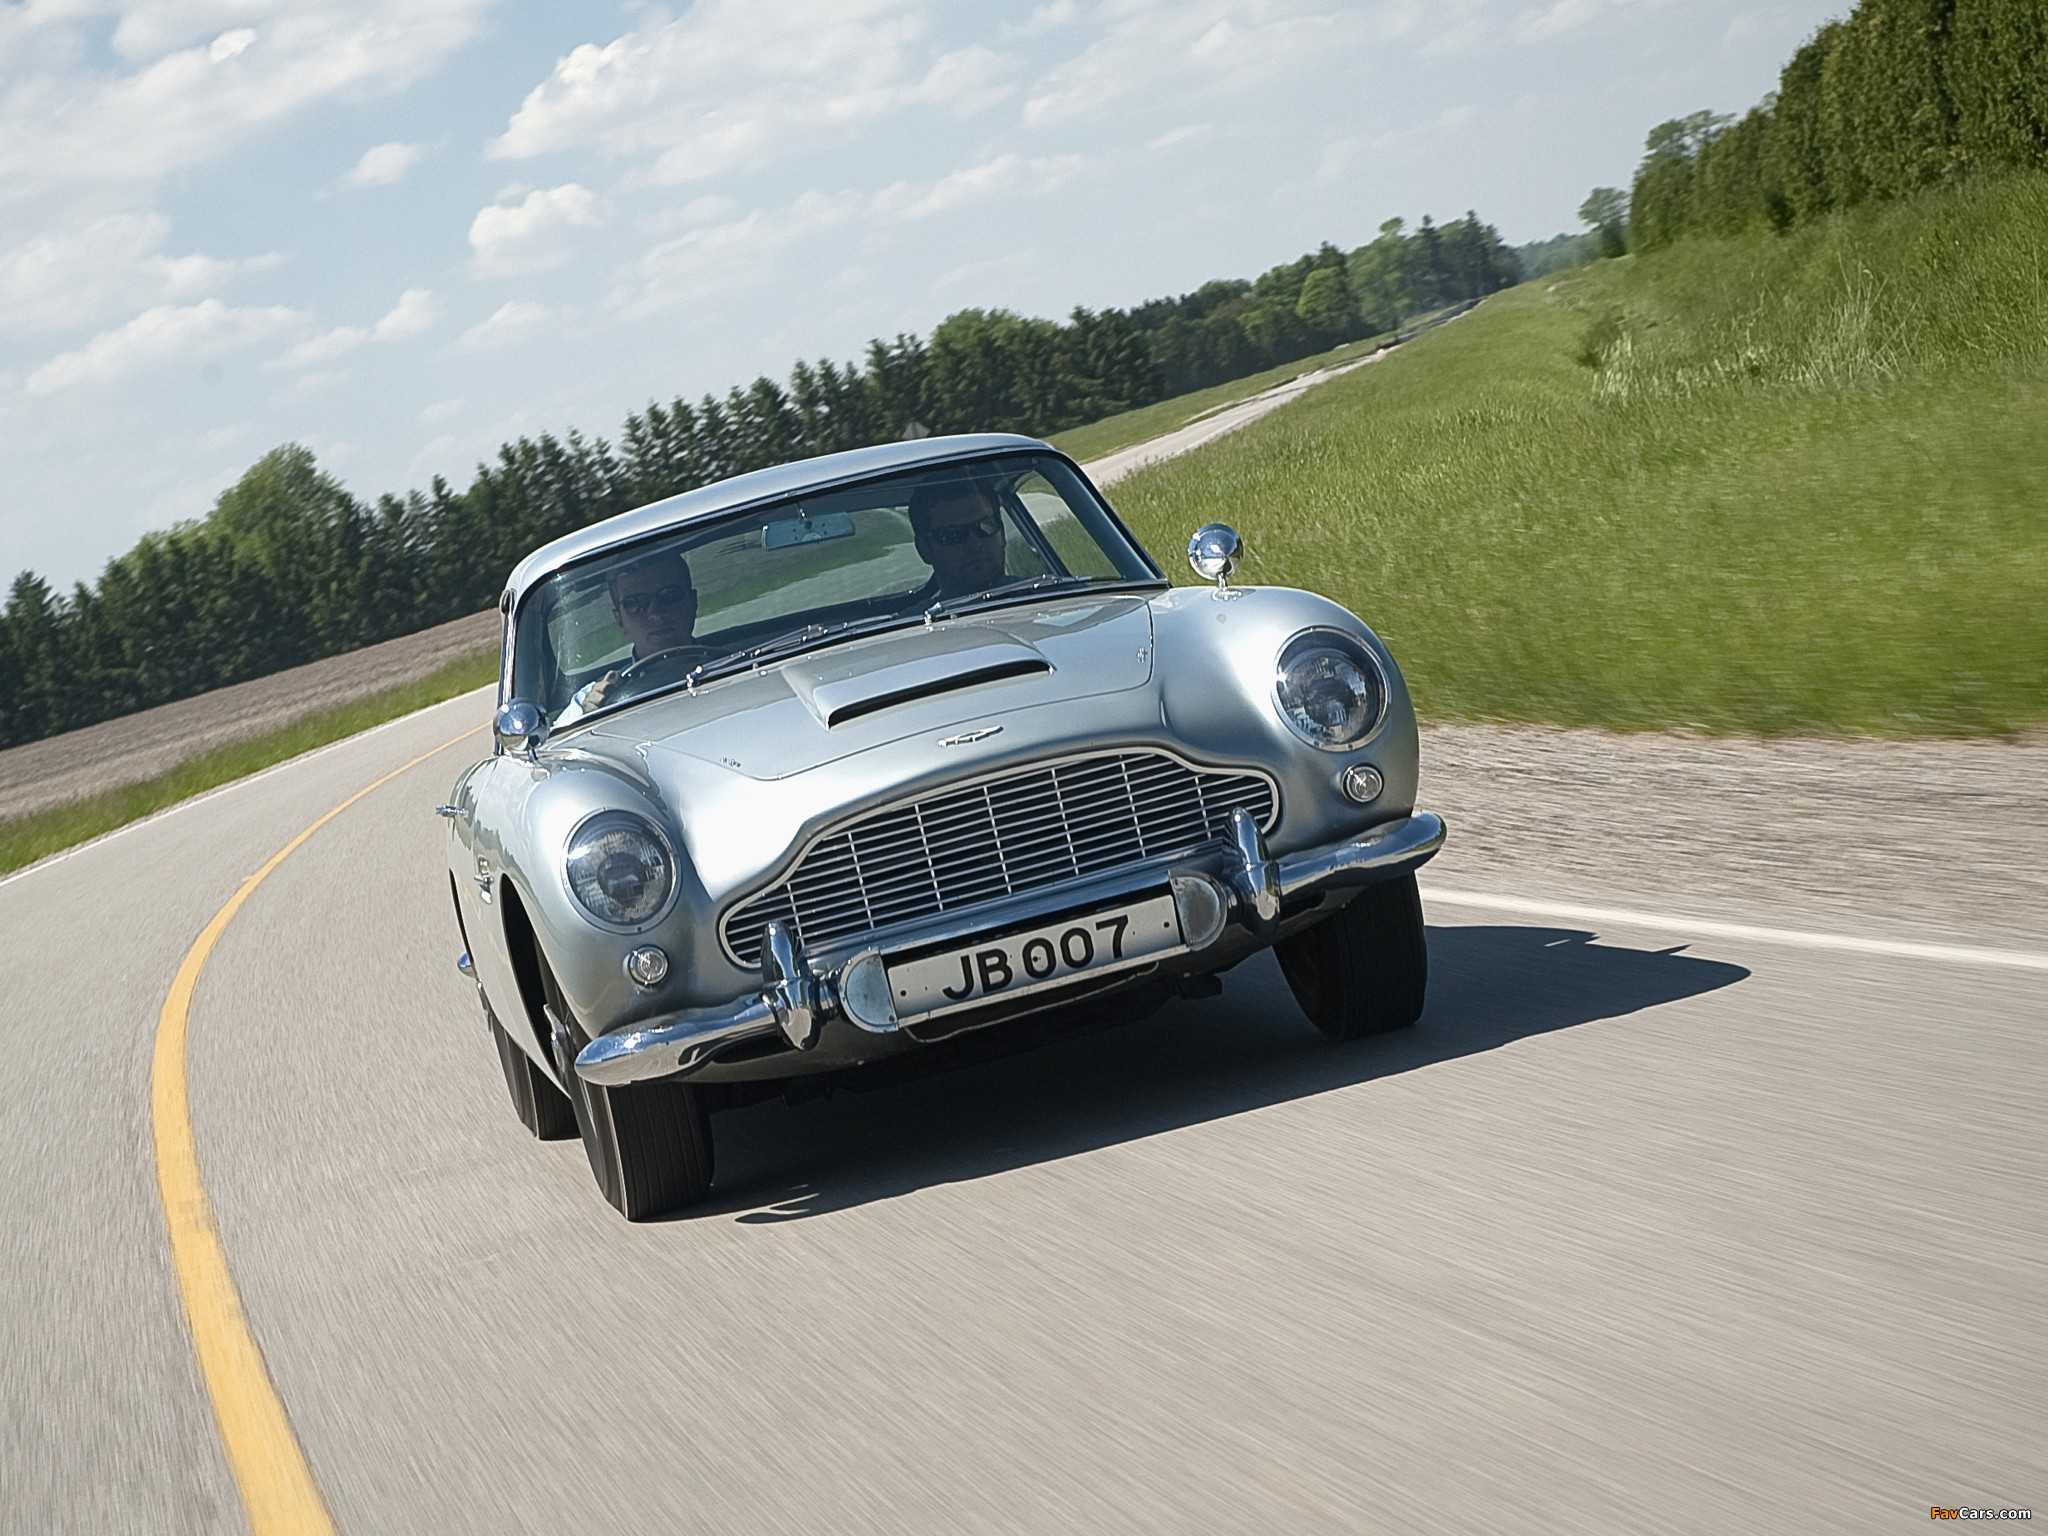 1964 Aston Martin Db5 >> Aston Martin DB5 James Bond Edition (1964) wallpapers (2048x1536)